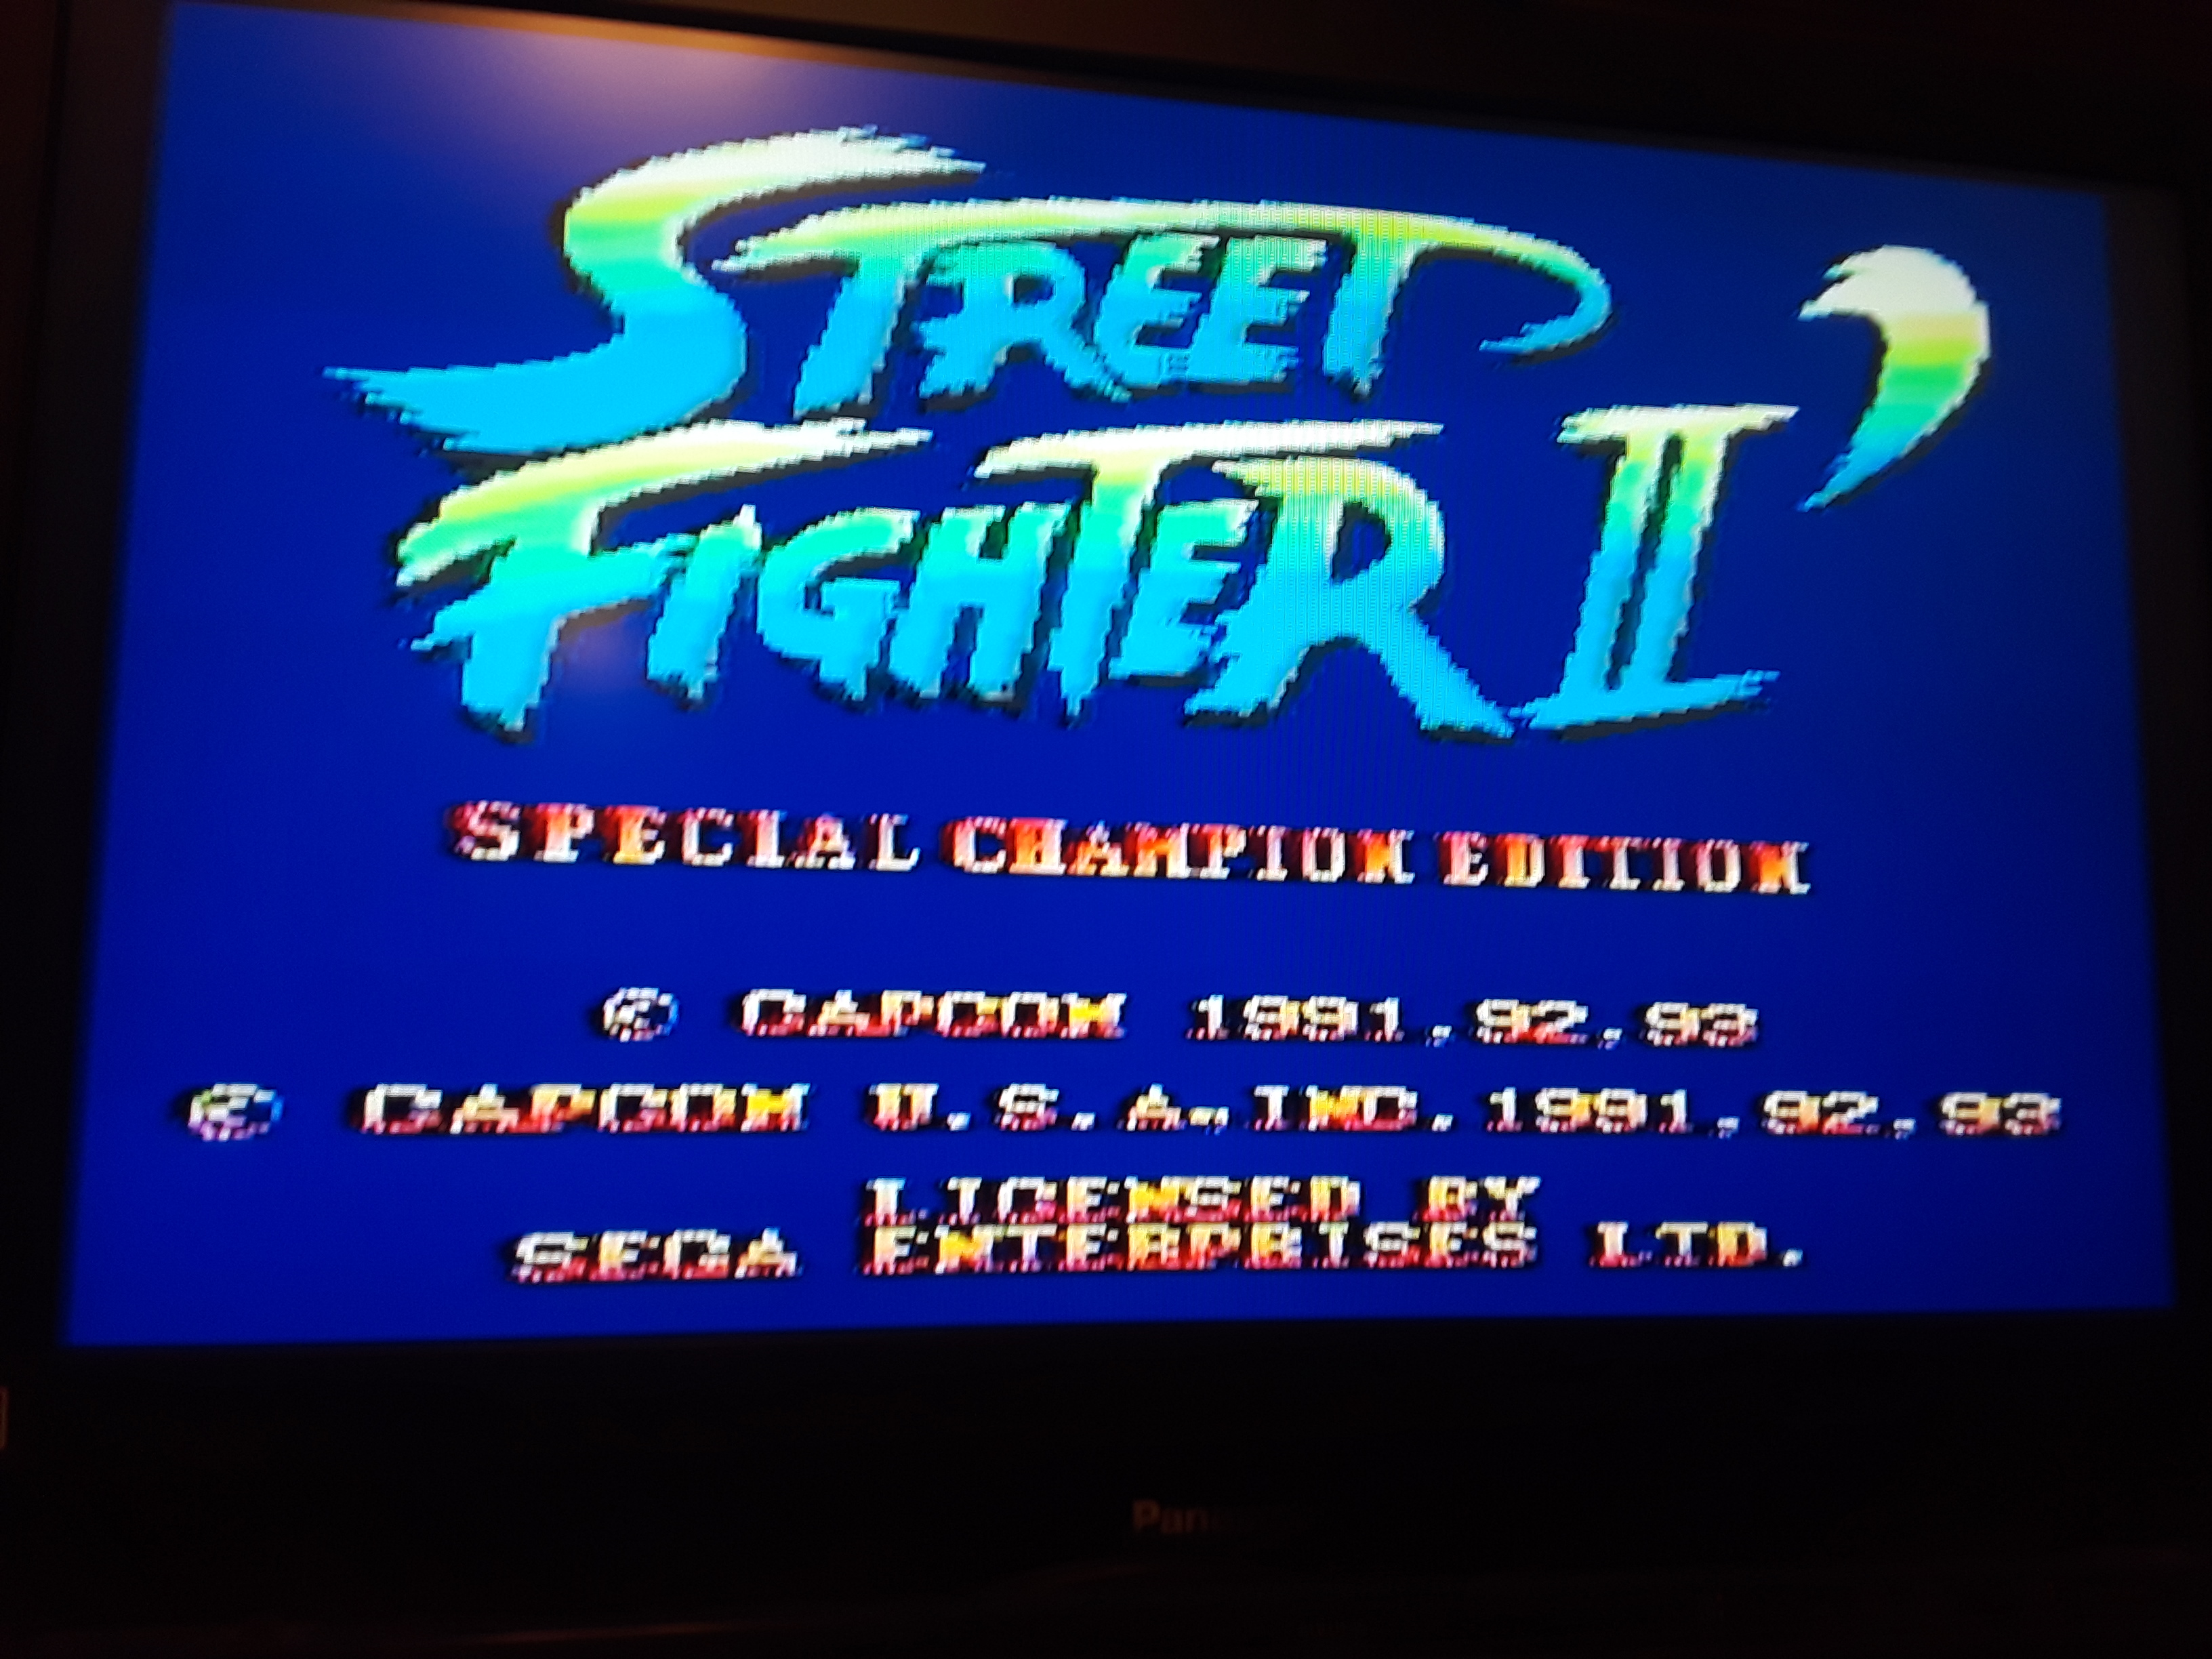 Street Fighter Ii Special Champion Edition Hyper Difficulty 1